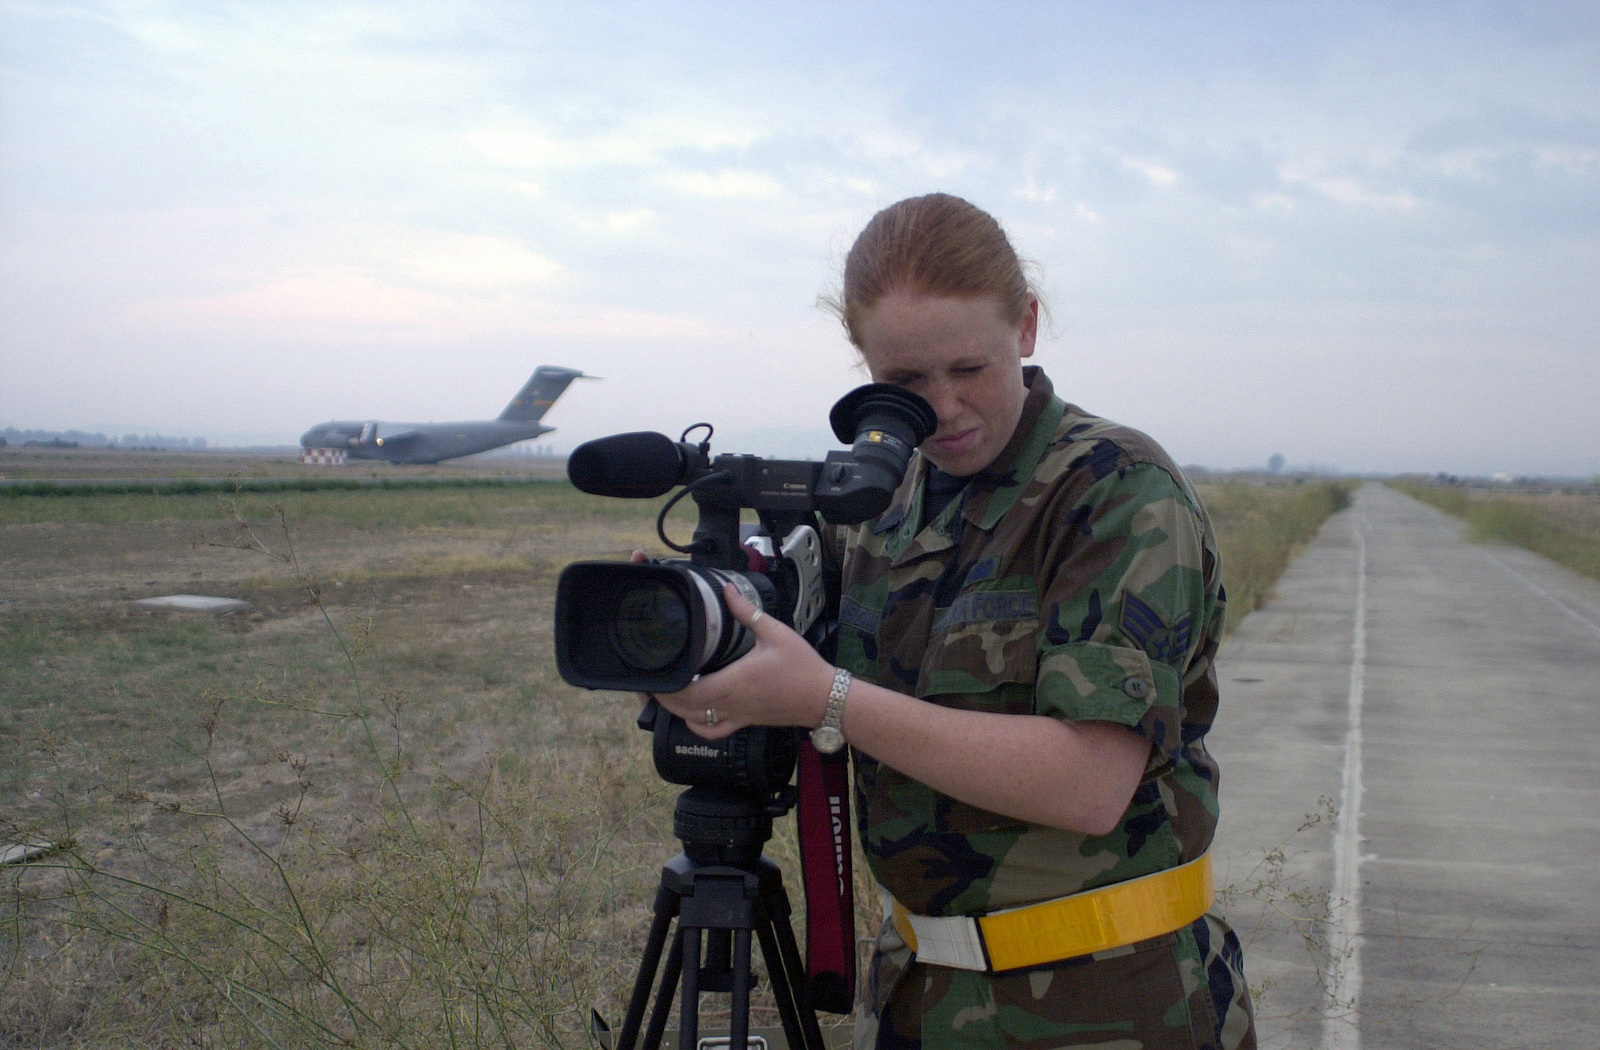 SENIOR AIRMAN Channa Johnson, US Air Force (USAF), videographer, 786th Communications Squadron, Ramstein Air Base, Germany, documents dawn takeoffs at Naval Air Station (NAS) Sigonella, Italy, during Operation ENDURING FREEDOM. In response to the terrorist attacks on September 11, 2001 at the New York World Trade Center and the Pentagon, President George W. Bush initiated Operation ENDURING FREEDOM in support of the Global War on Terrorism (GWOT), fighting terrorism abroad